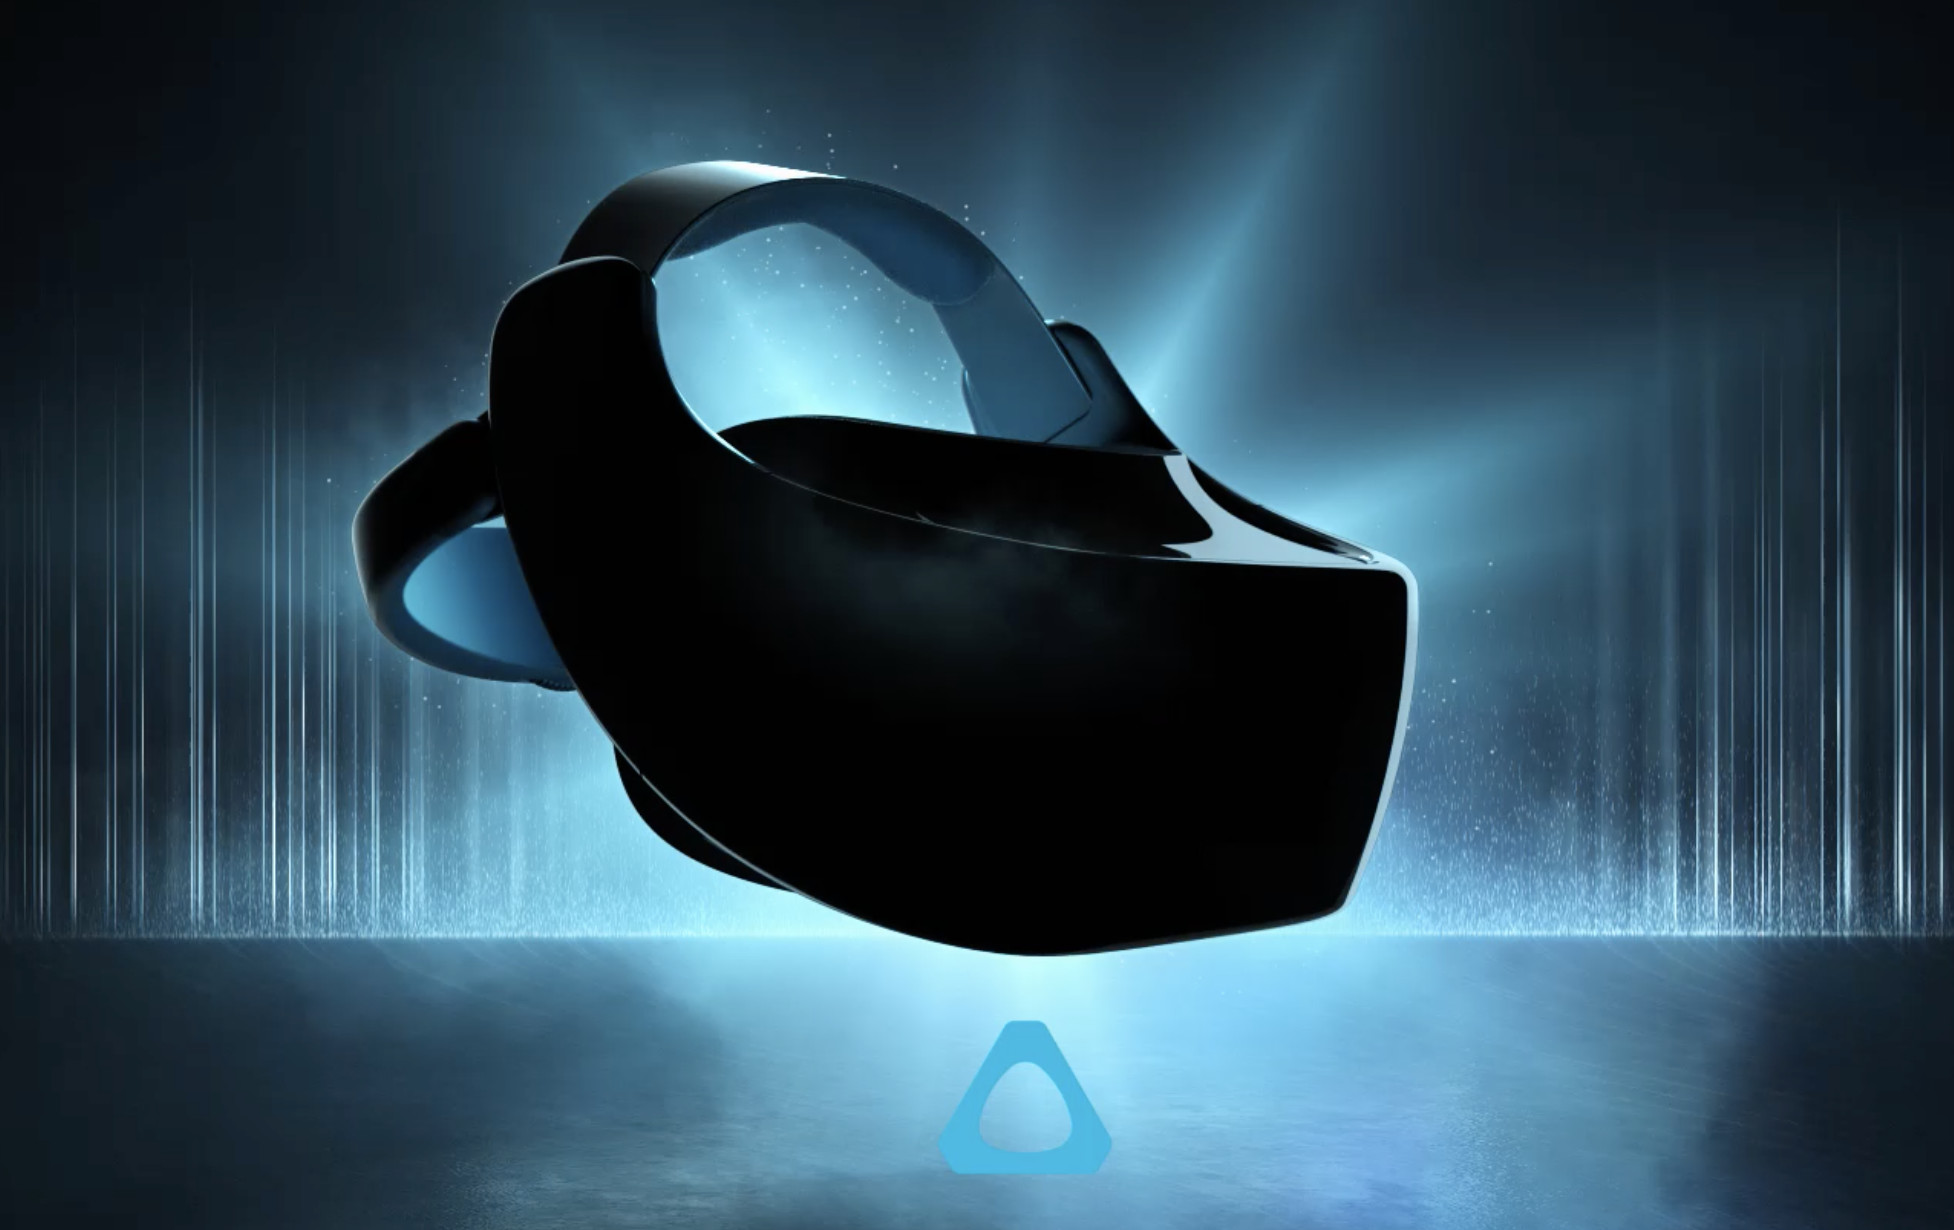 HTC Announces Vive Wave Open Mobile VR Platform, Vive Focus HMD